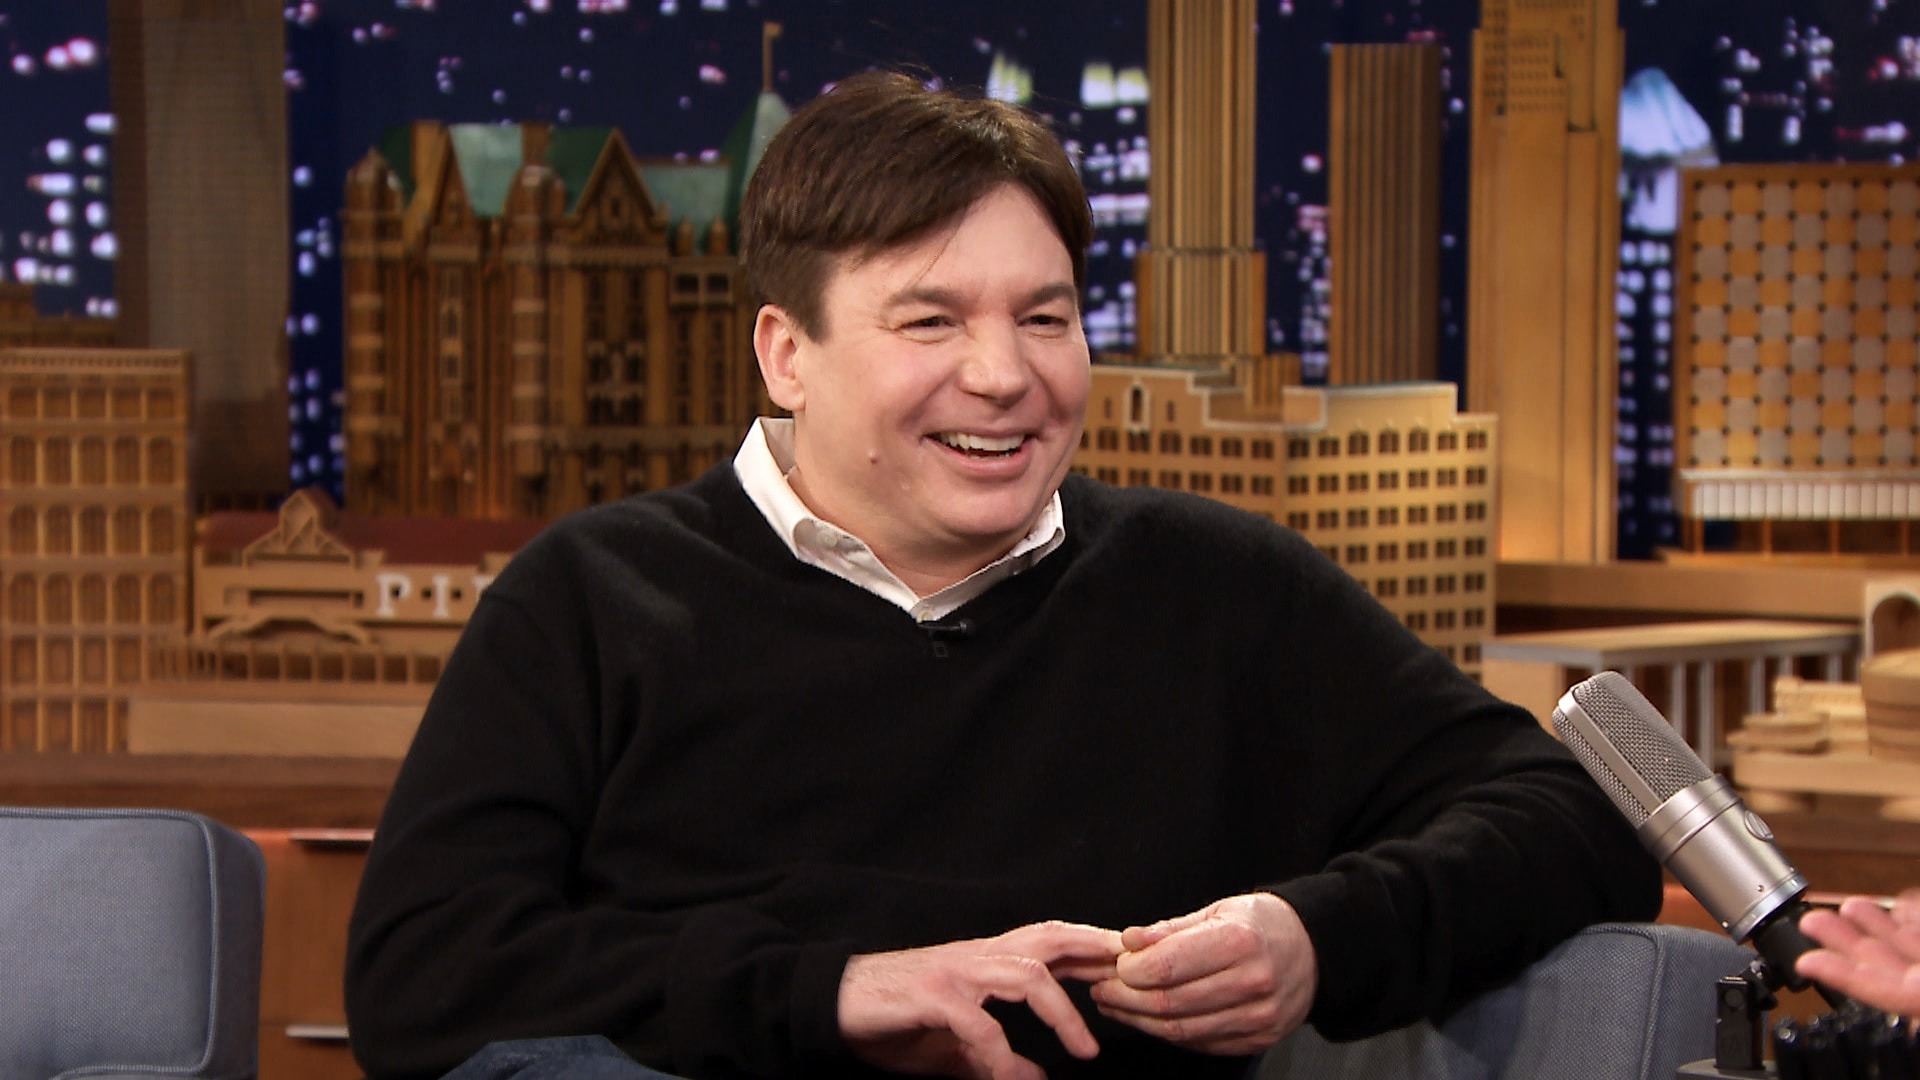 Mike Myers Wallpapers hd